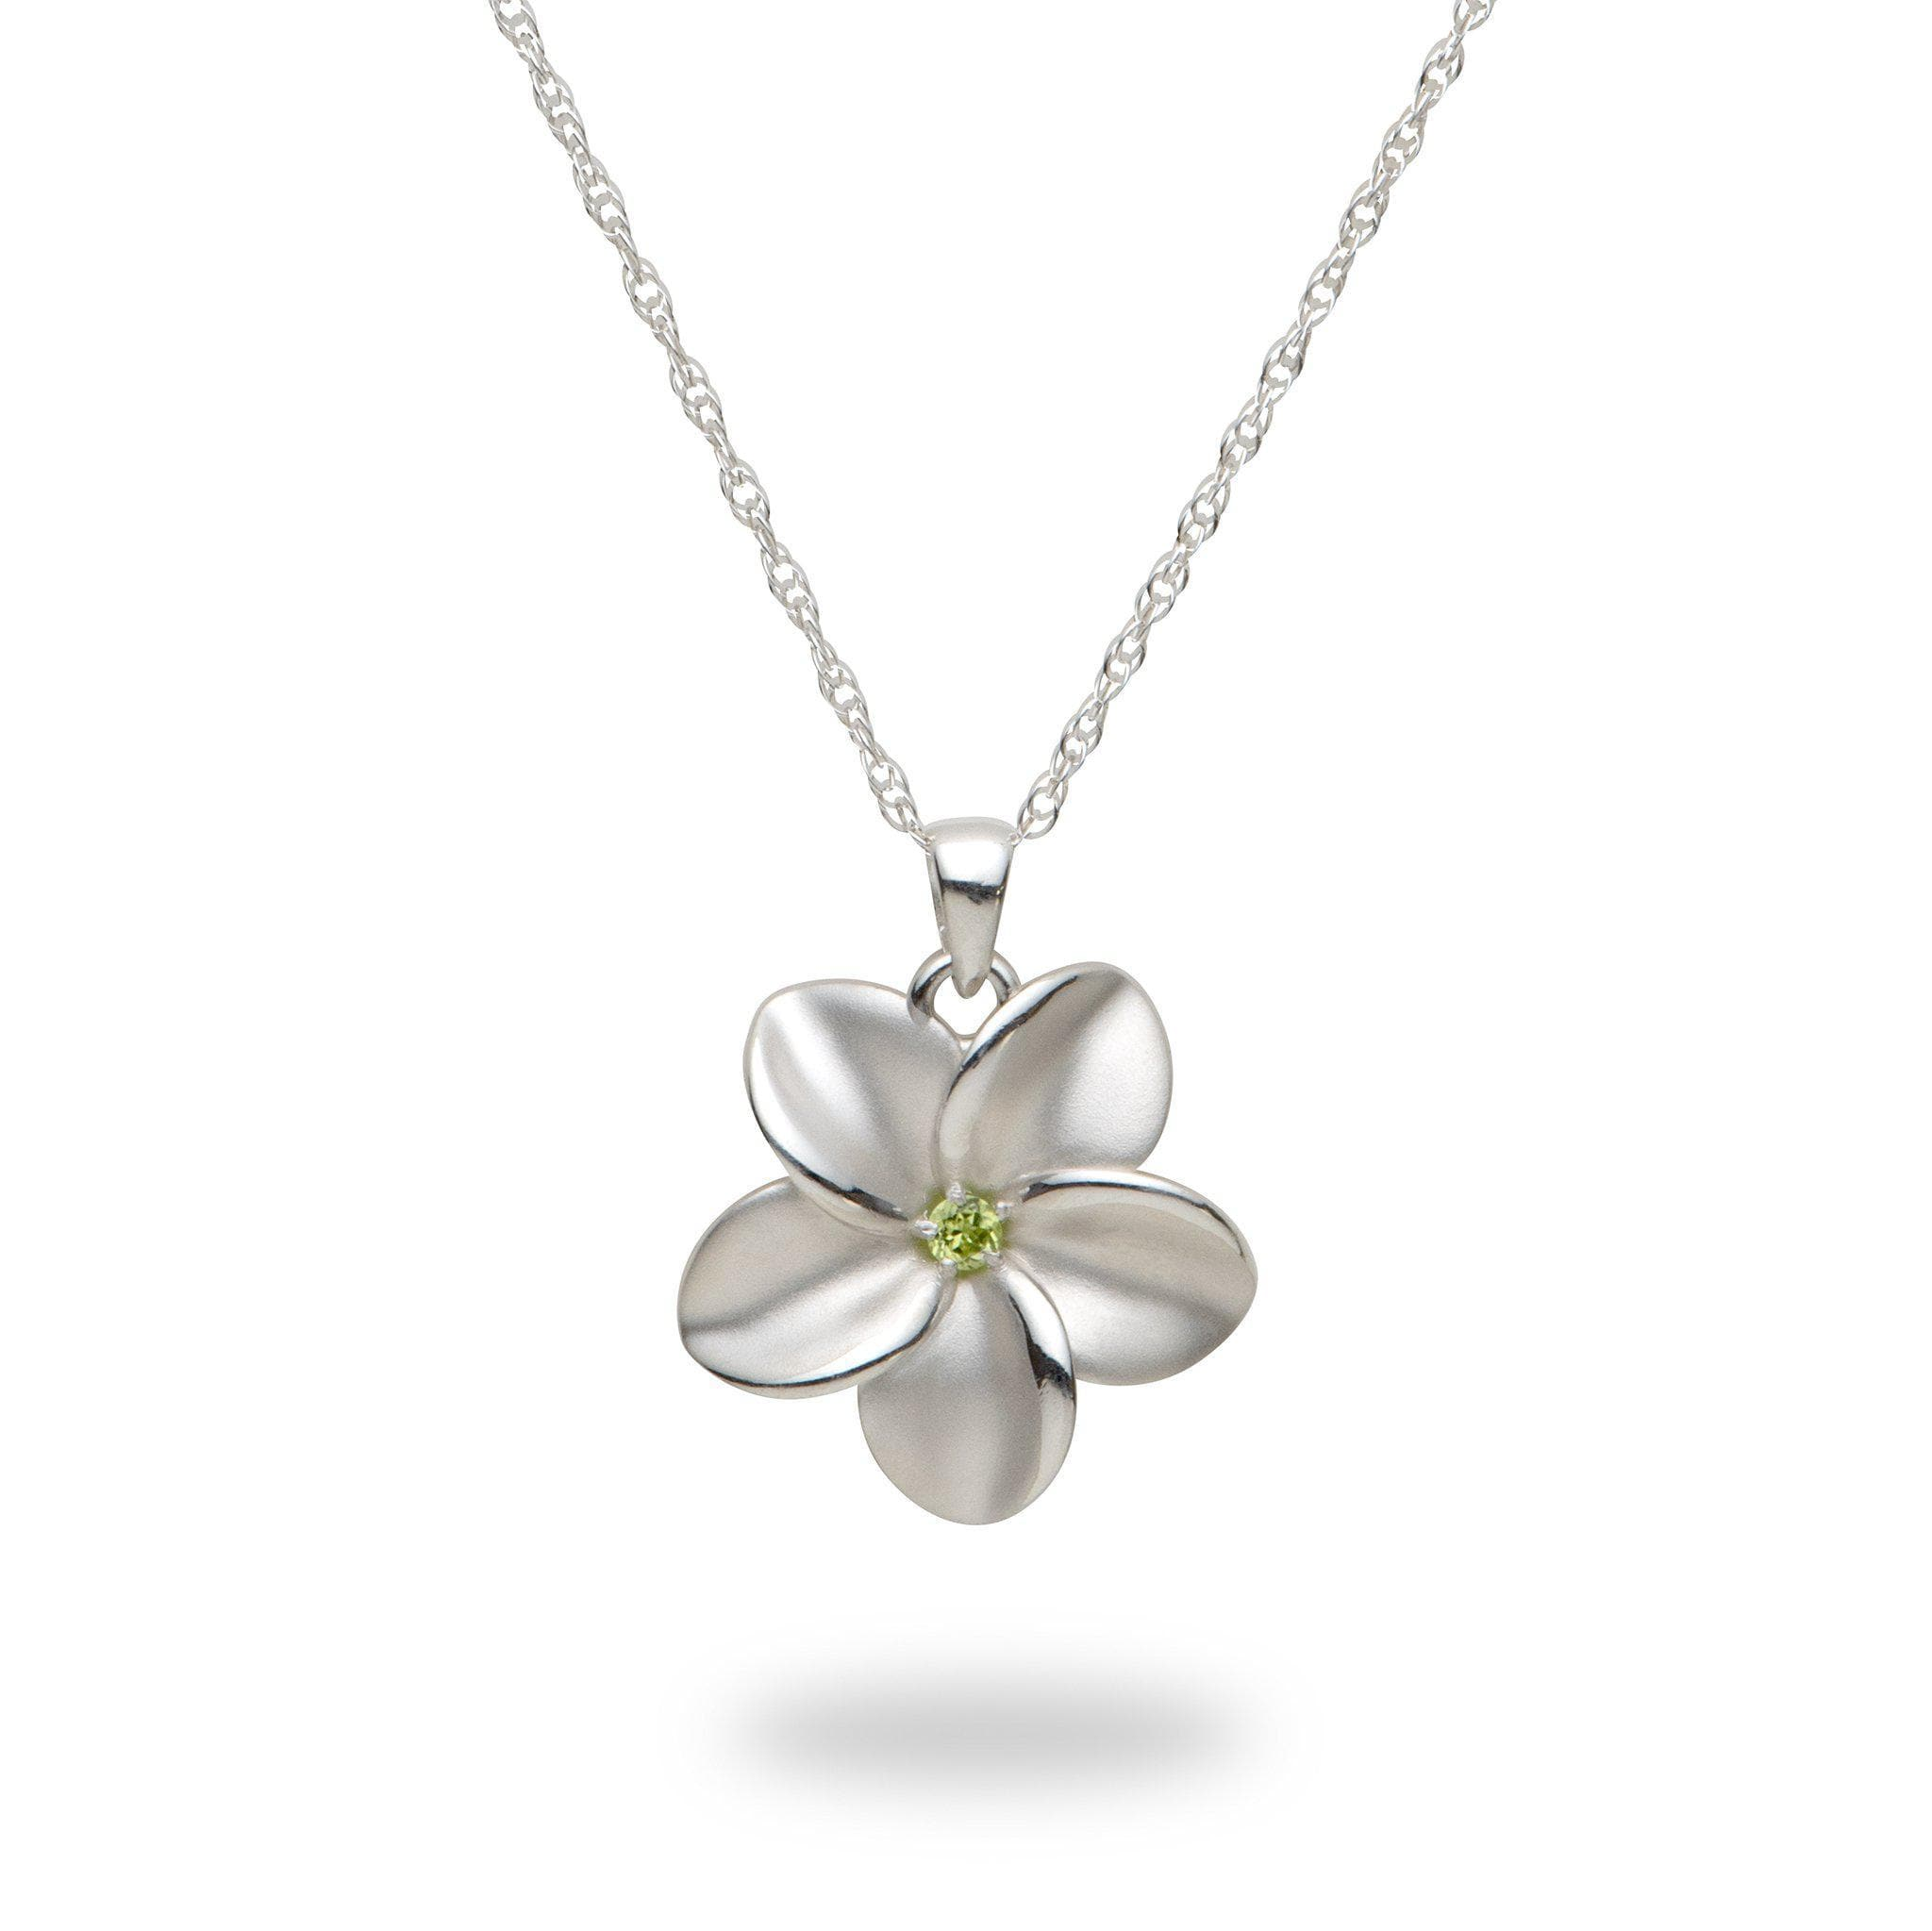 Plumeria Necklace with Peridot in Sterling Silver - 23mm